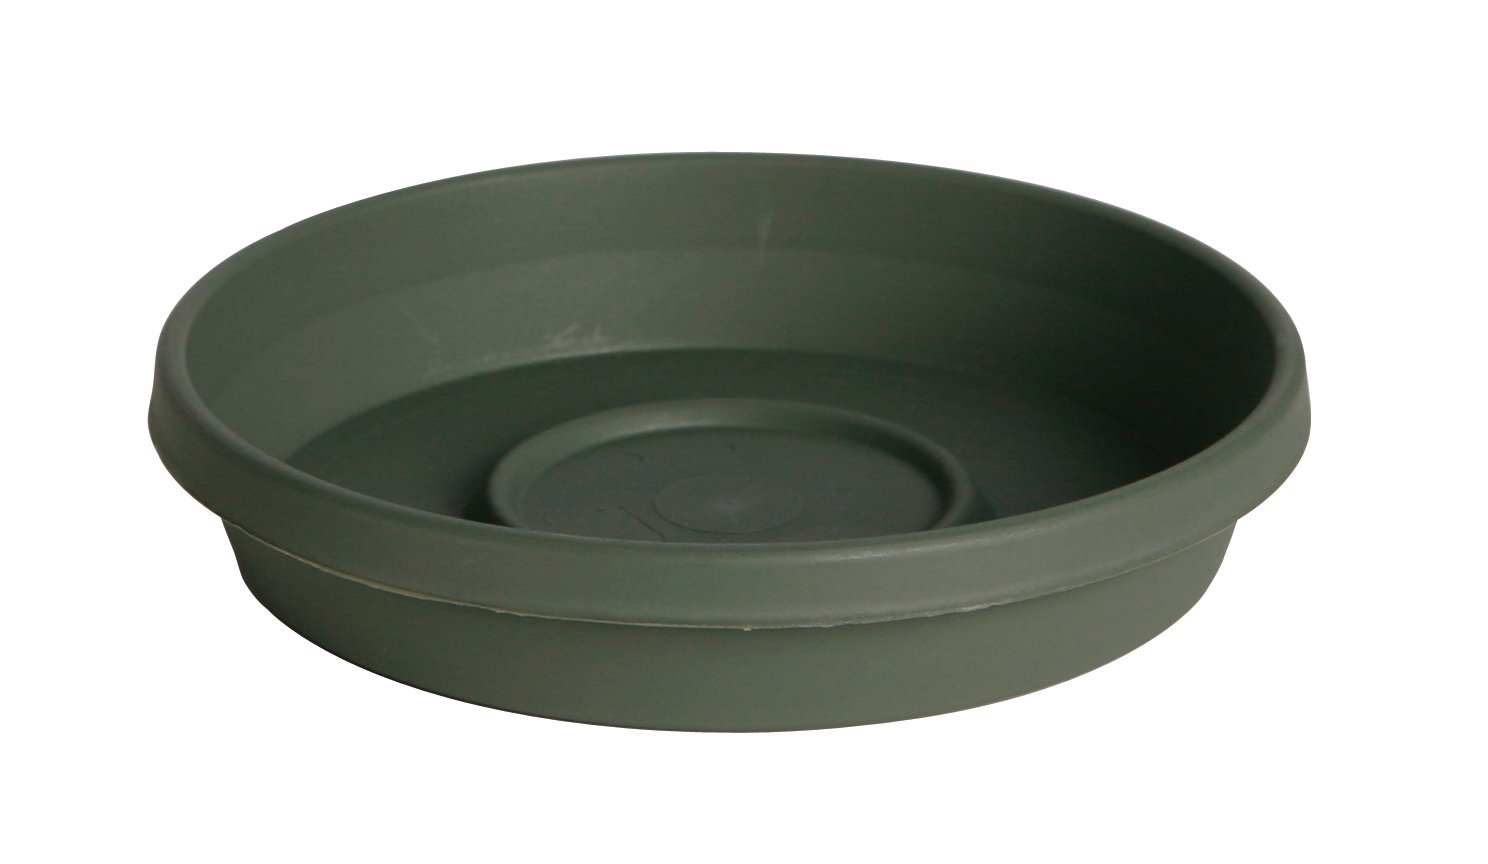 Fiskars 51424 24-Inch Terratray Planter Tray, Thyme Green by Bloem